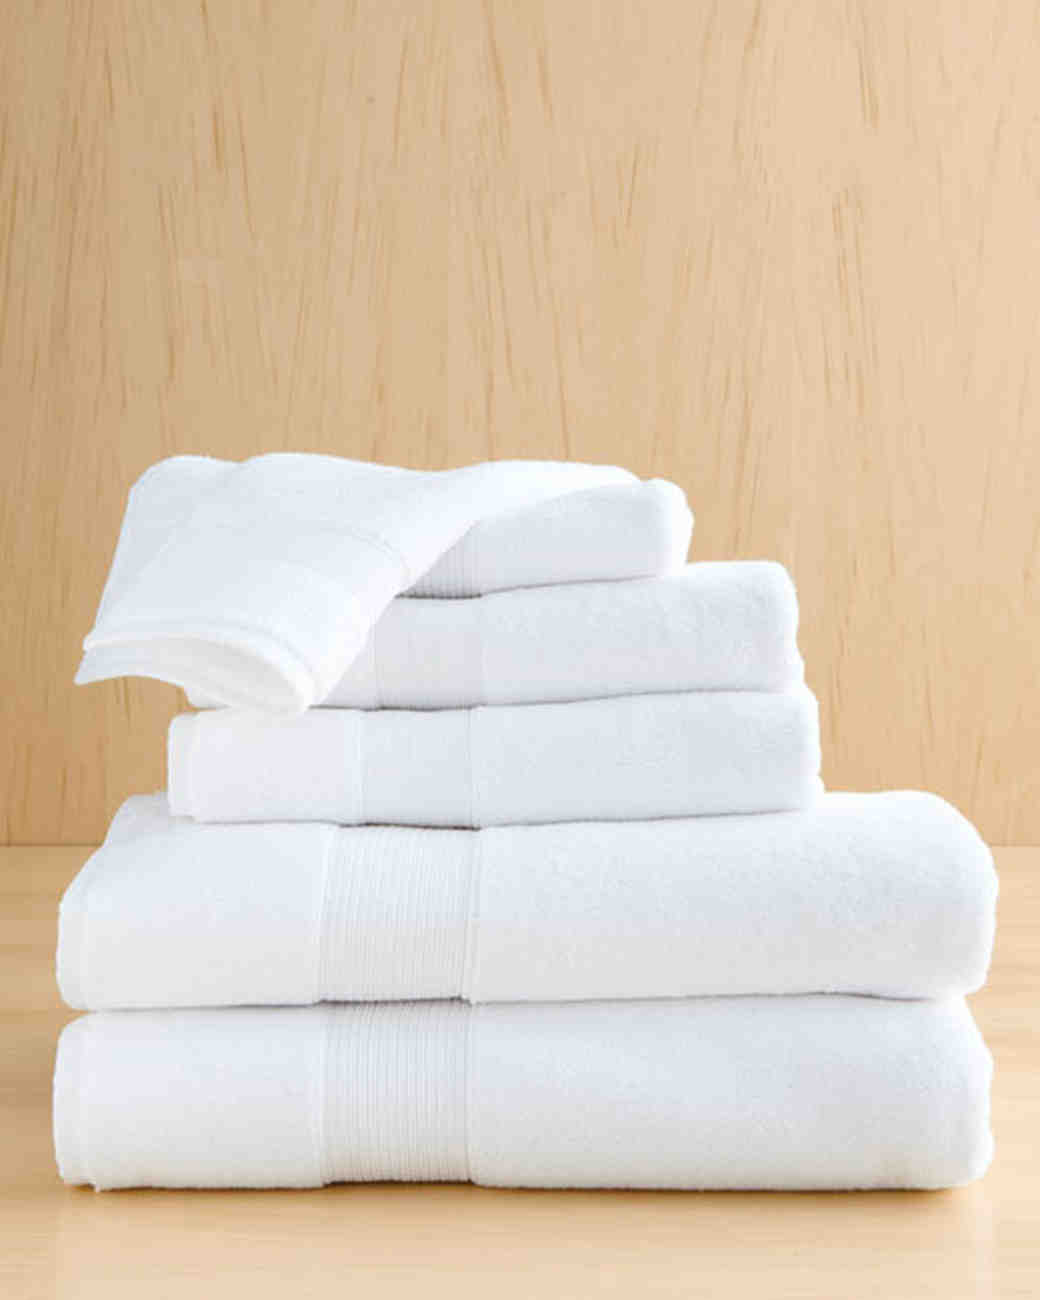 mw106509_spr11_towels2.jpg